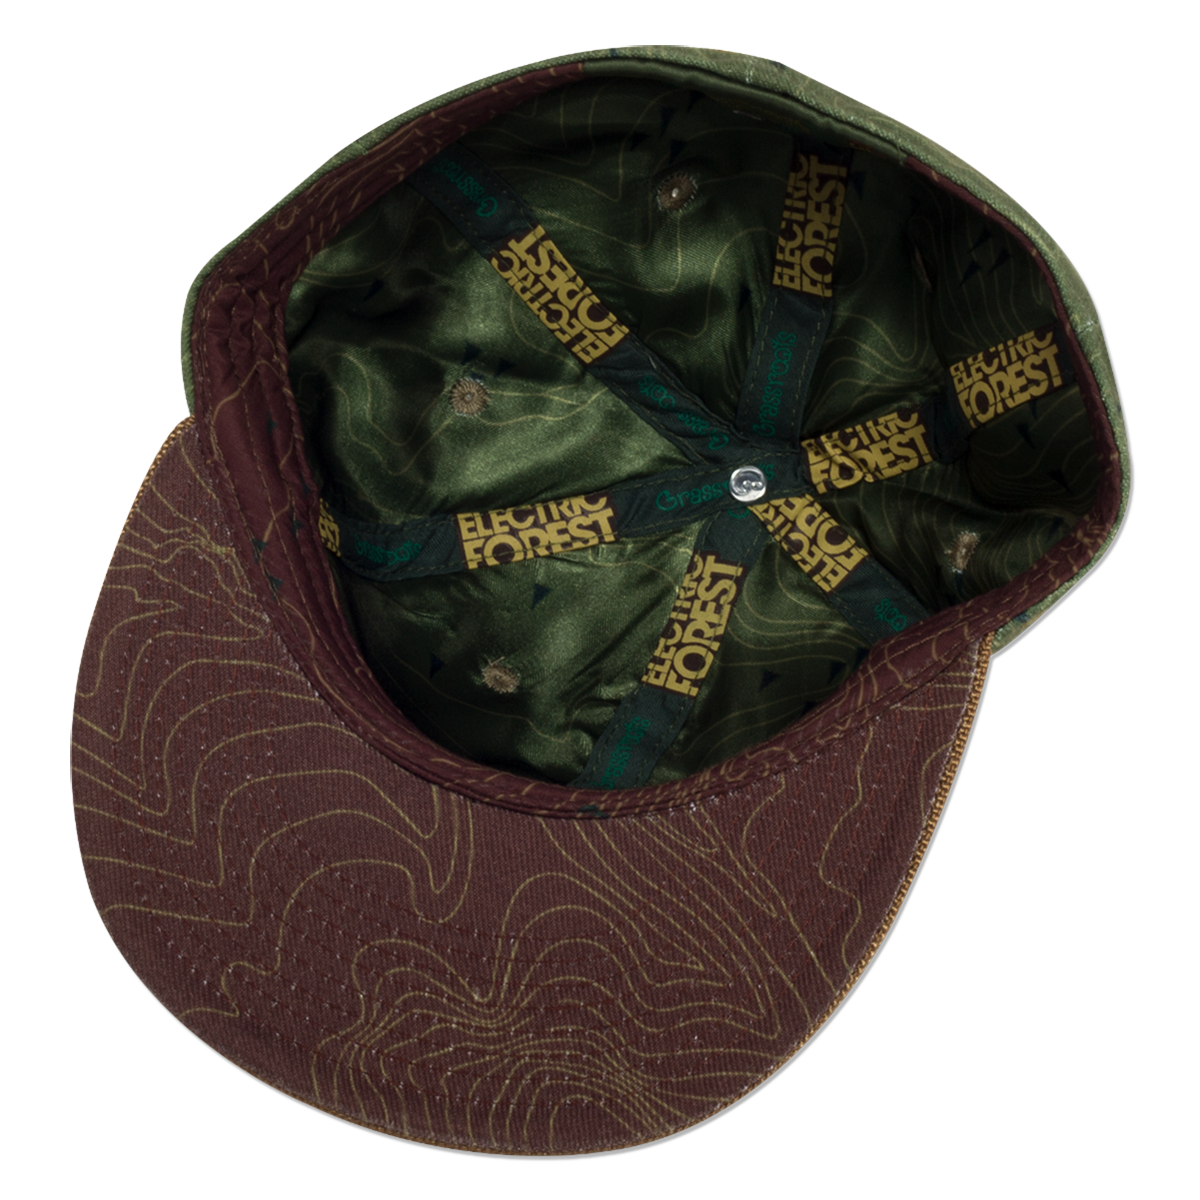 Official 2017 Grassroots California custom flat brim, fitted hat - FOREST PATCH